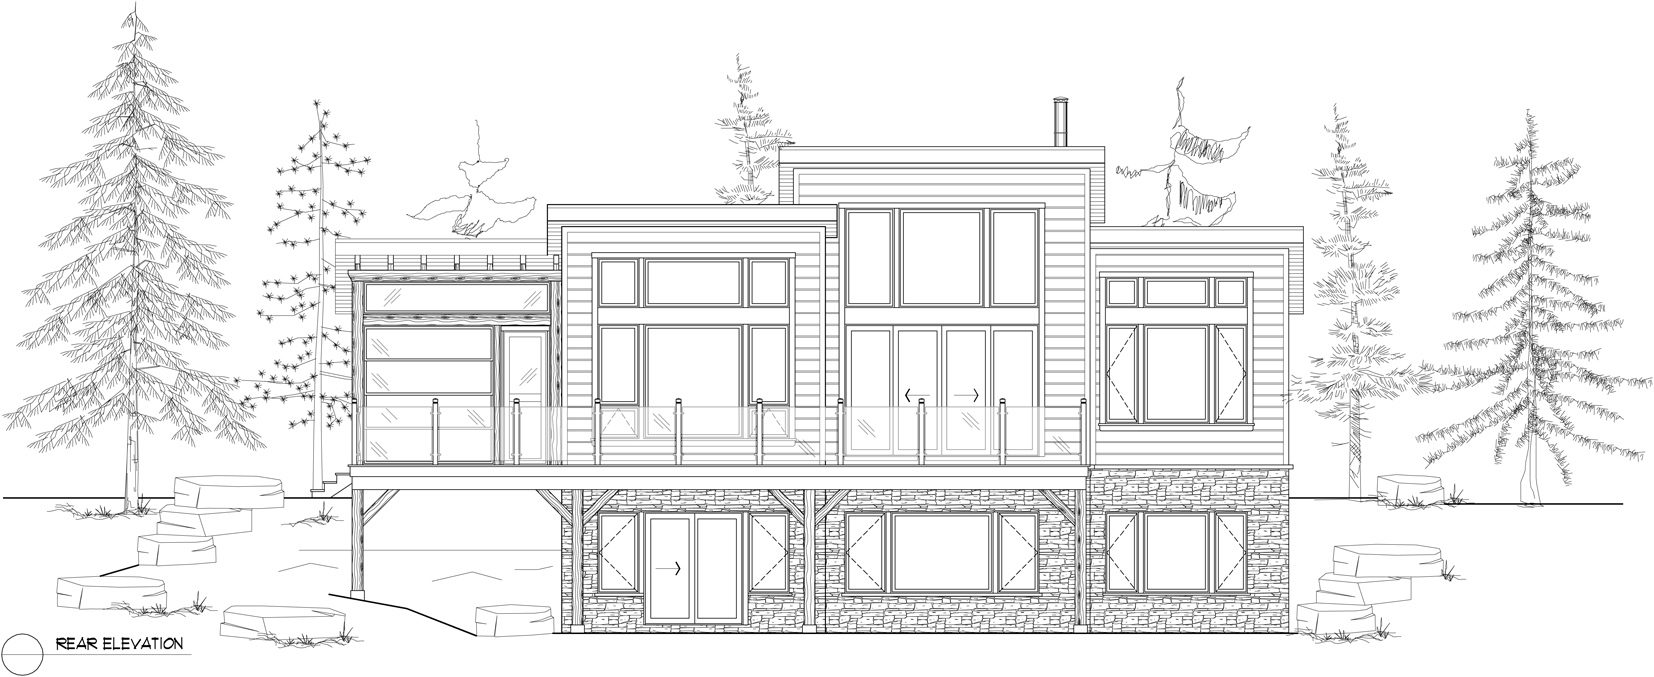 Normerica Timber Frames, House Plan, The Kershaw 3808, Rear Elevation